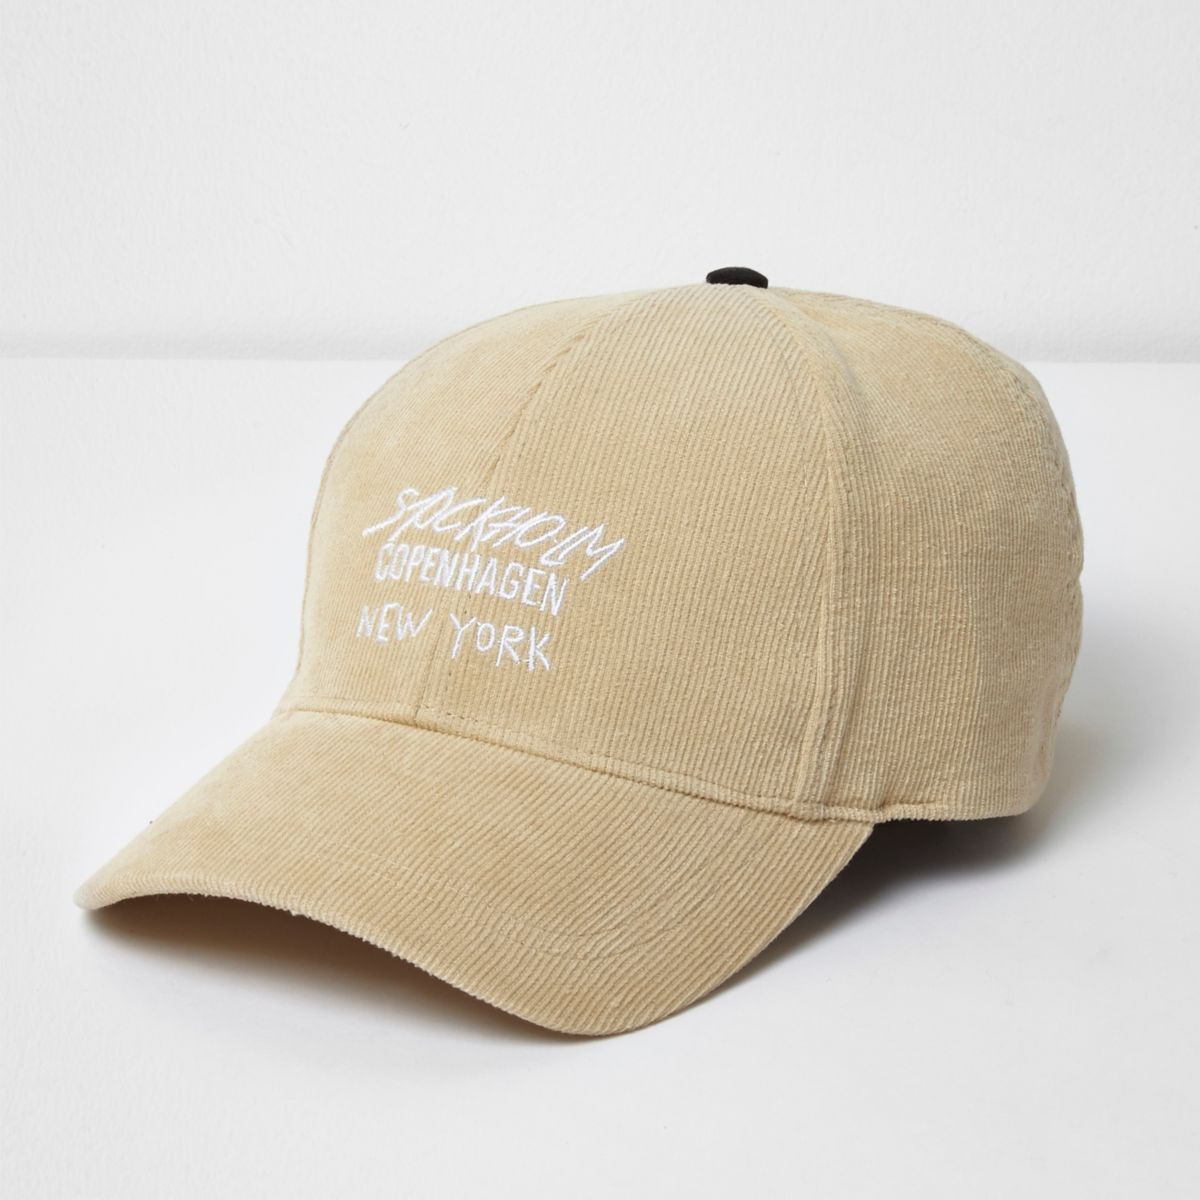 Yellow 'Copenhagen' embroidered cap